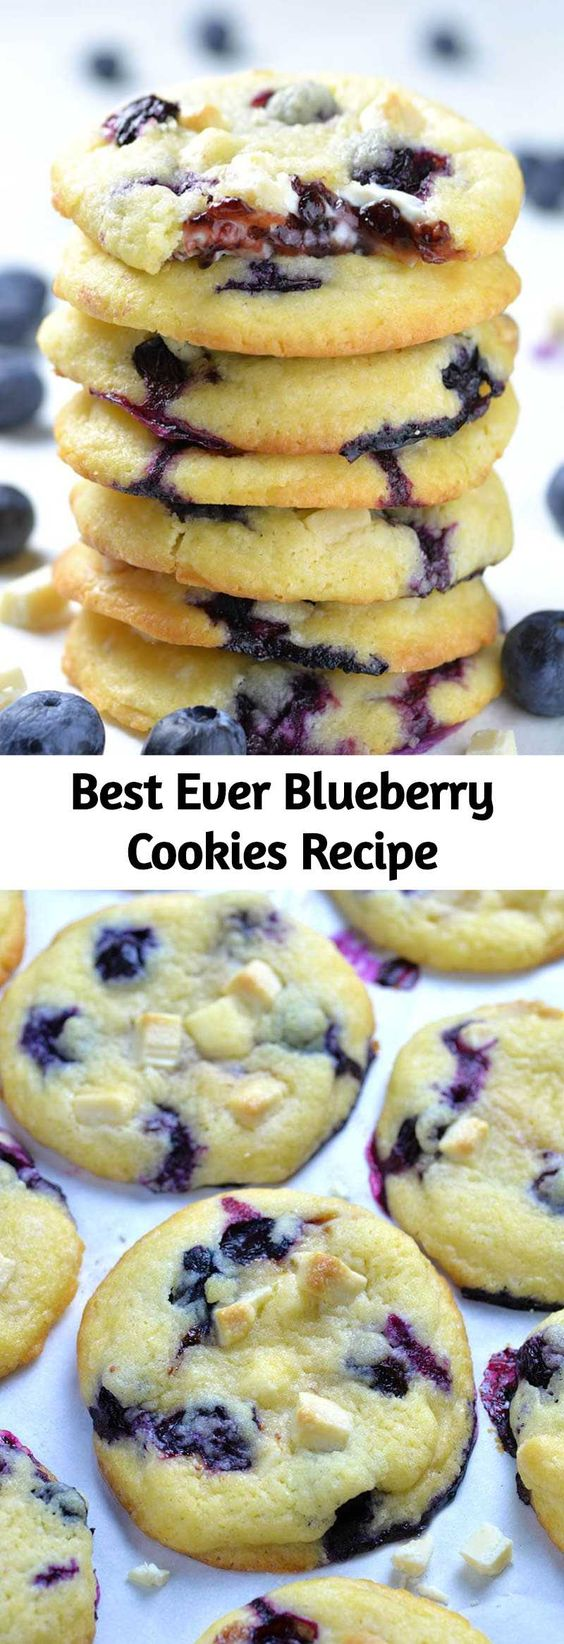 Best Ever Blueberry Cookies Recipe